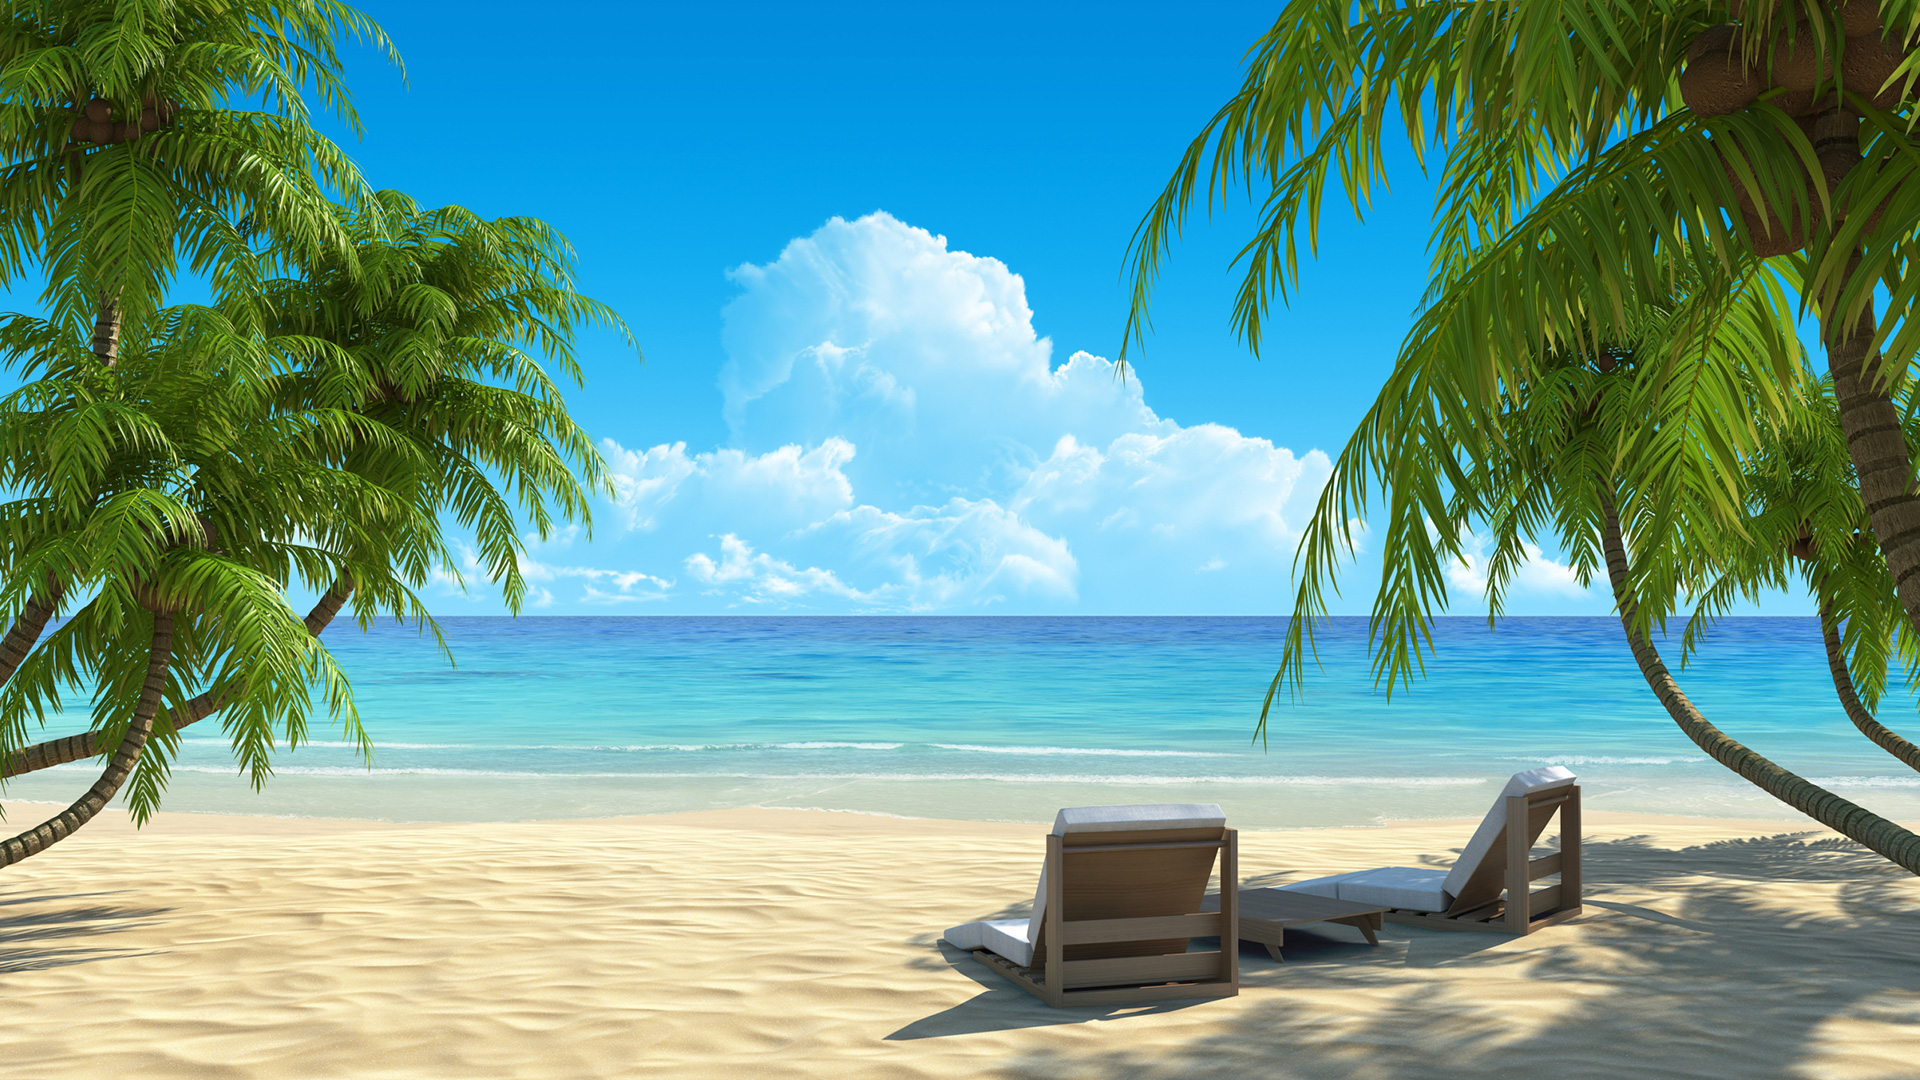 Paradise beach widescreen hd wallpaper   HD Wallpapers 1920x1080